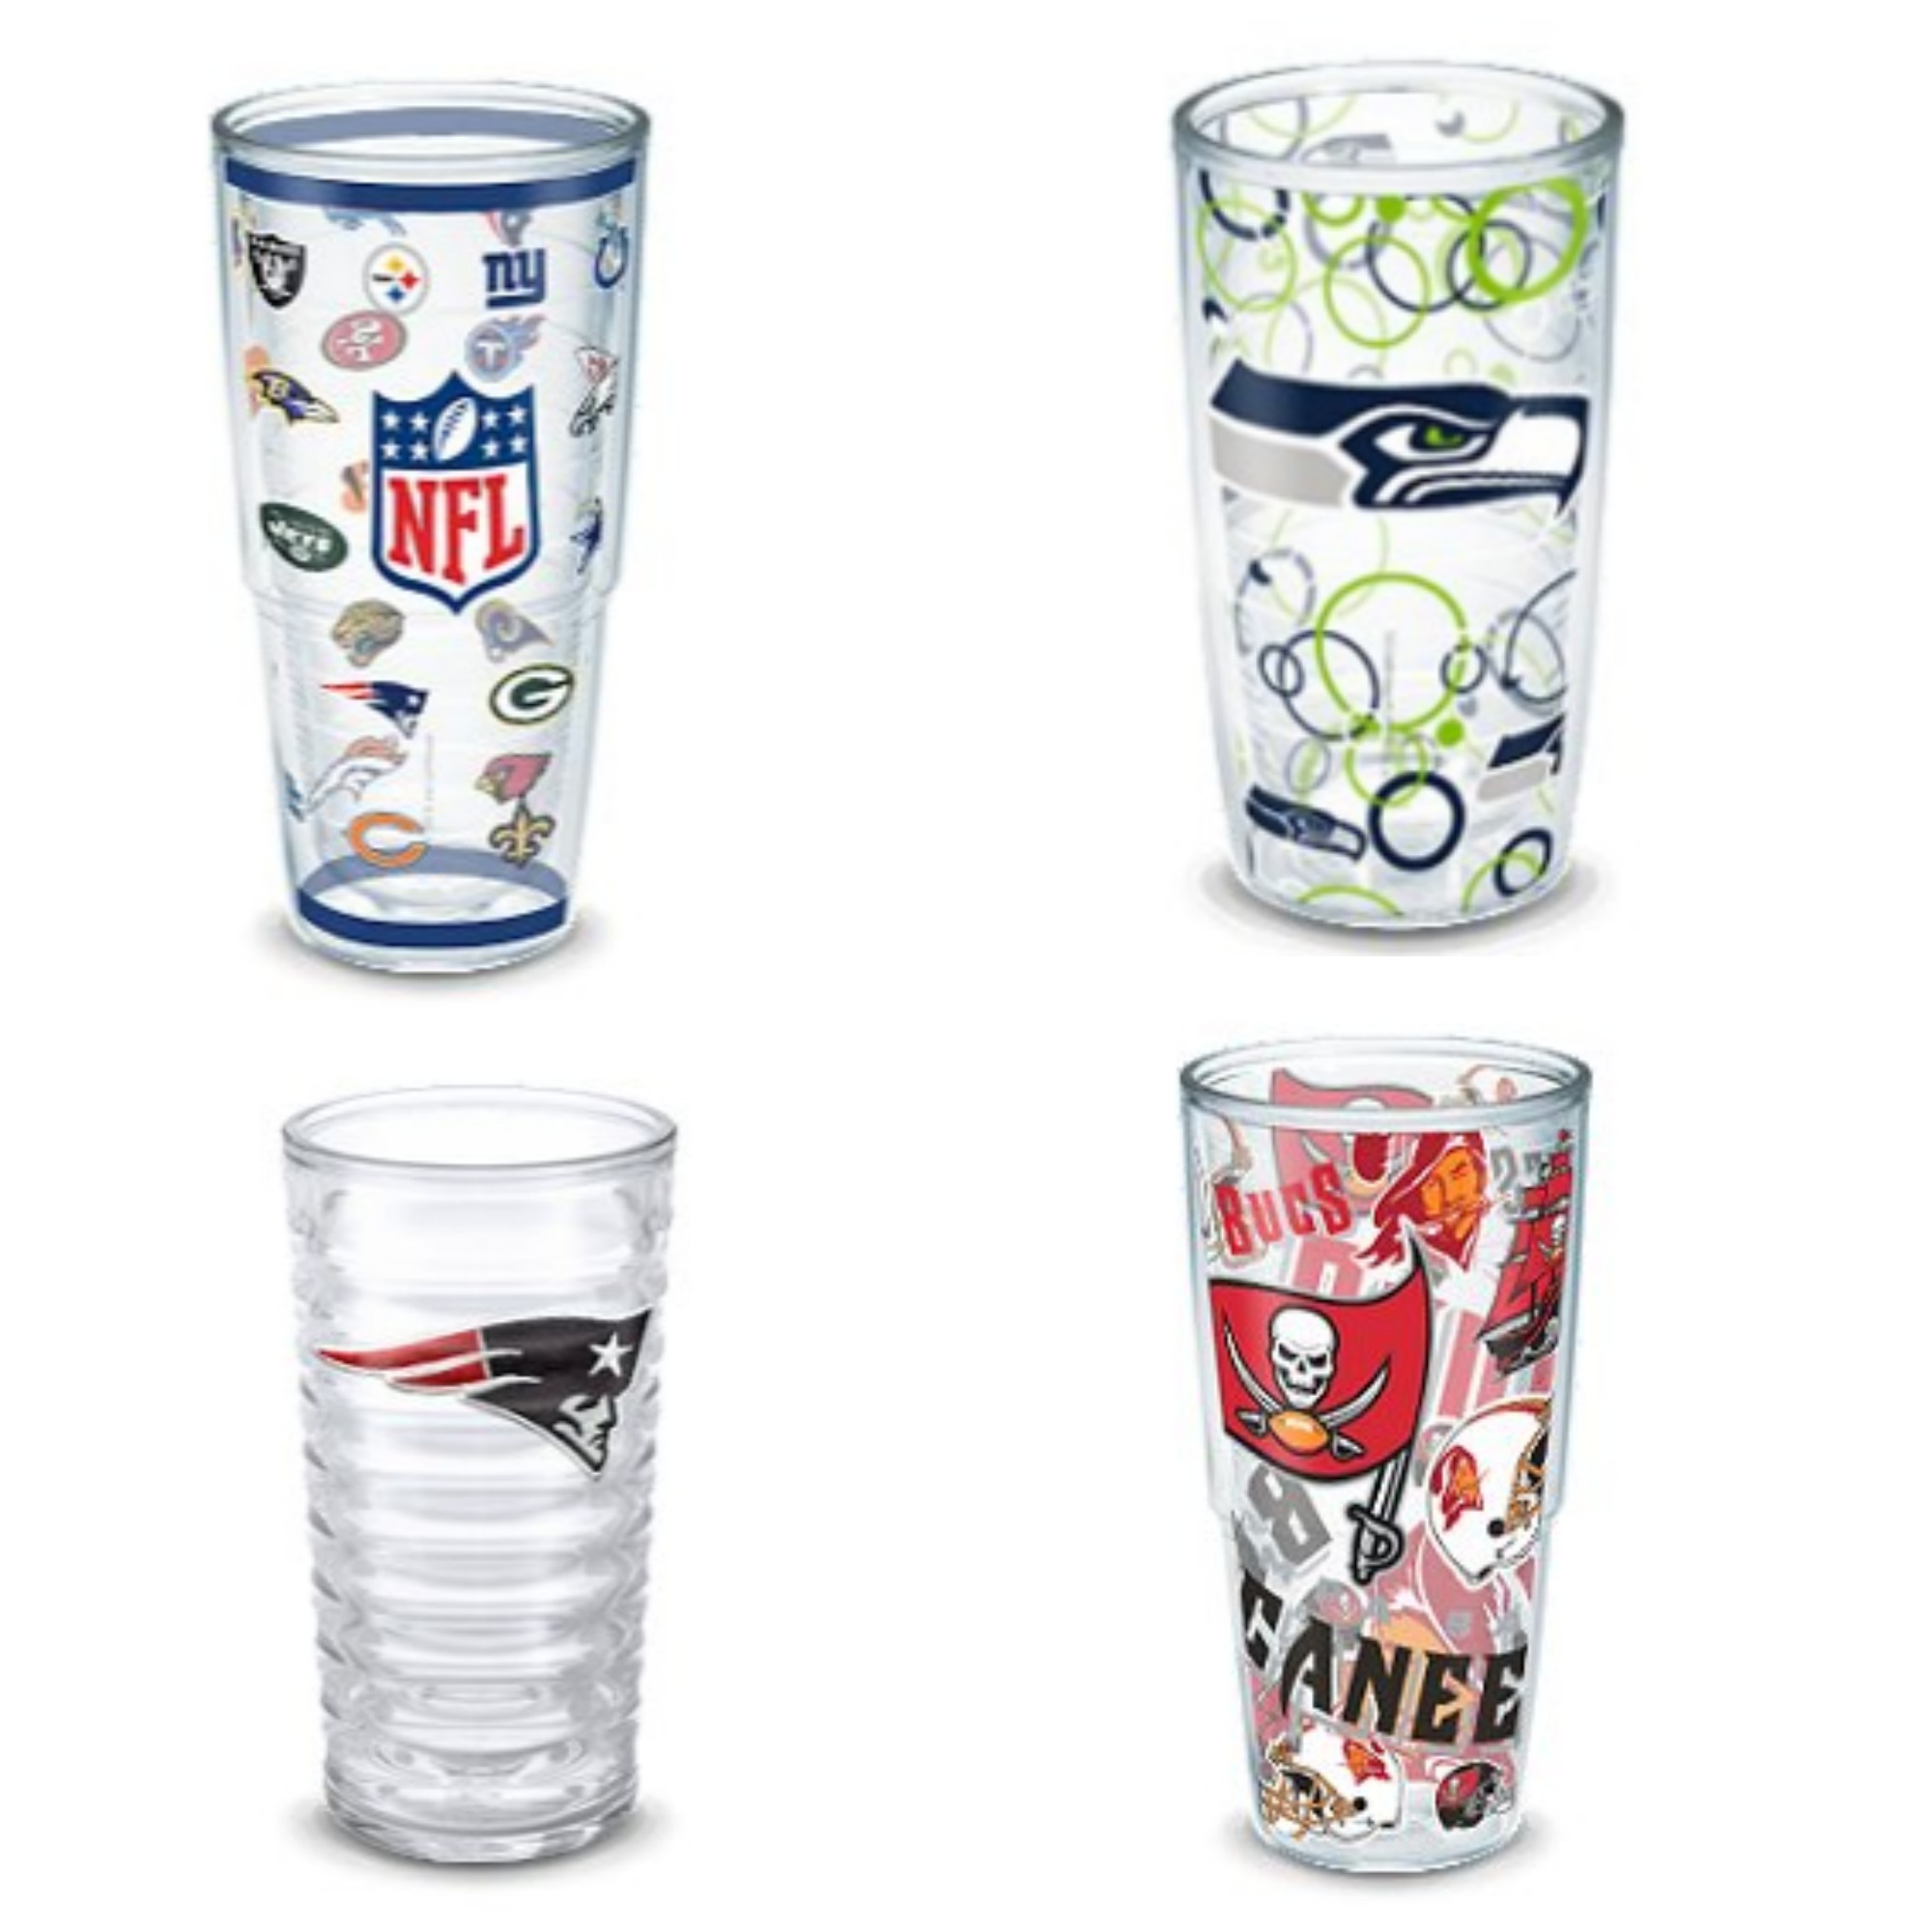 tervis nfl tumblers